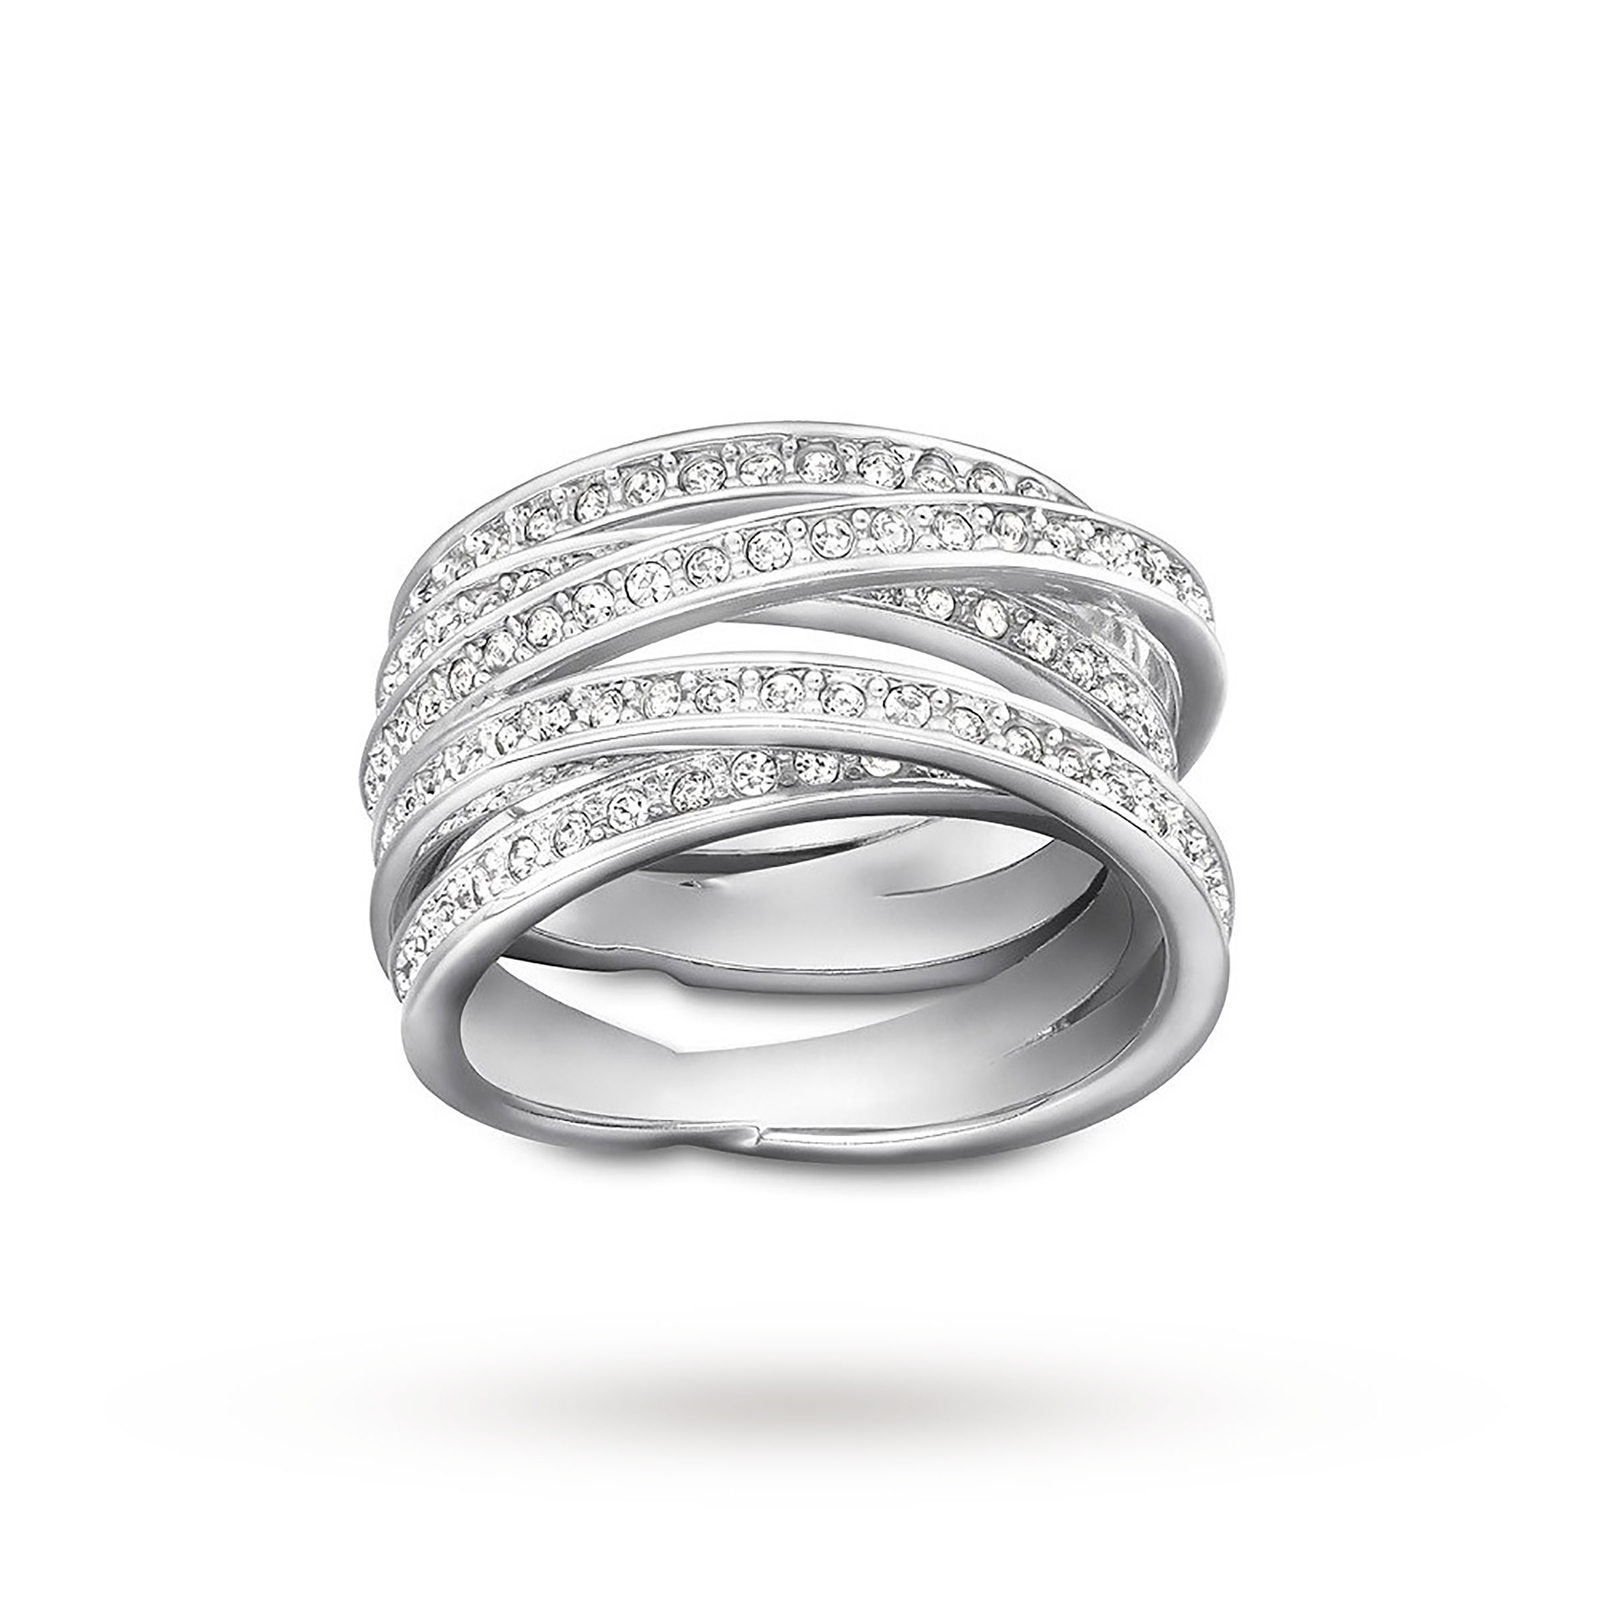 diamonds swirl rings twist with spiral viewing shop at of engagement photo for fascinating gallery photos latest attachment